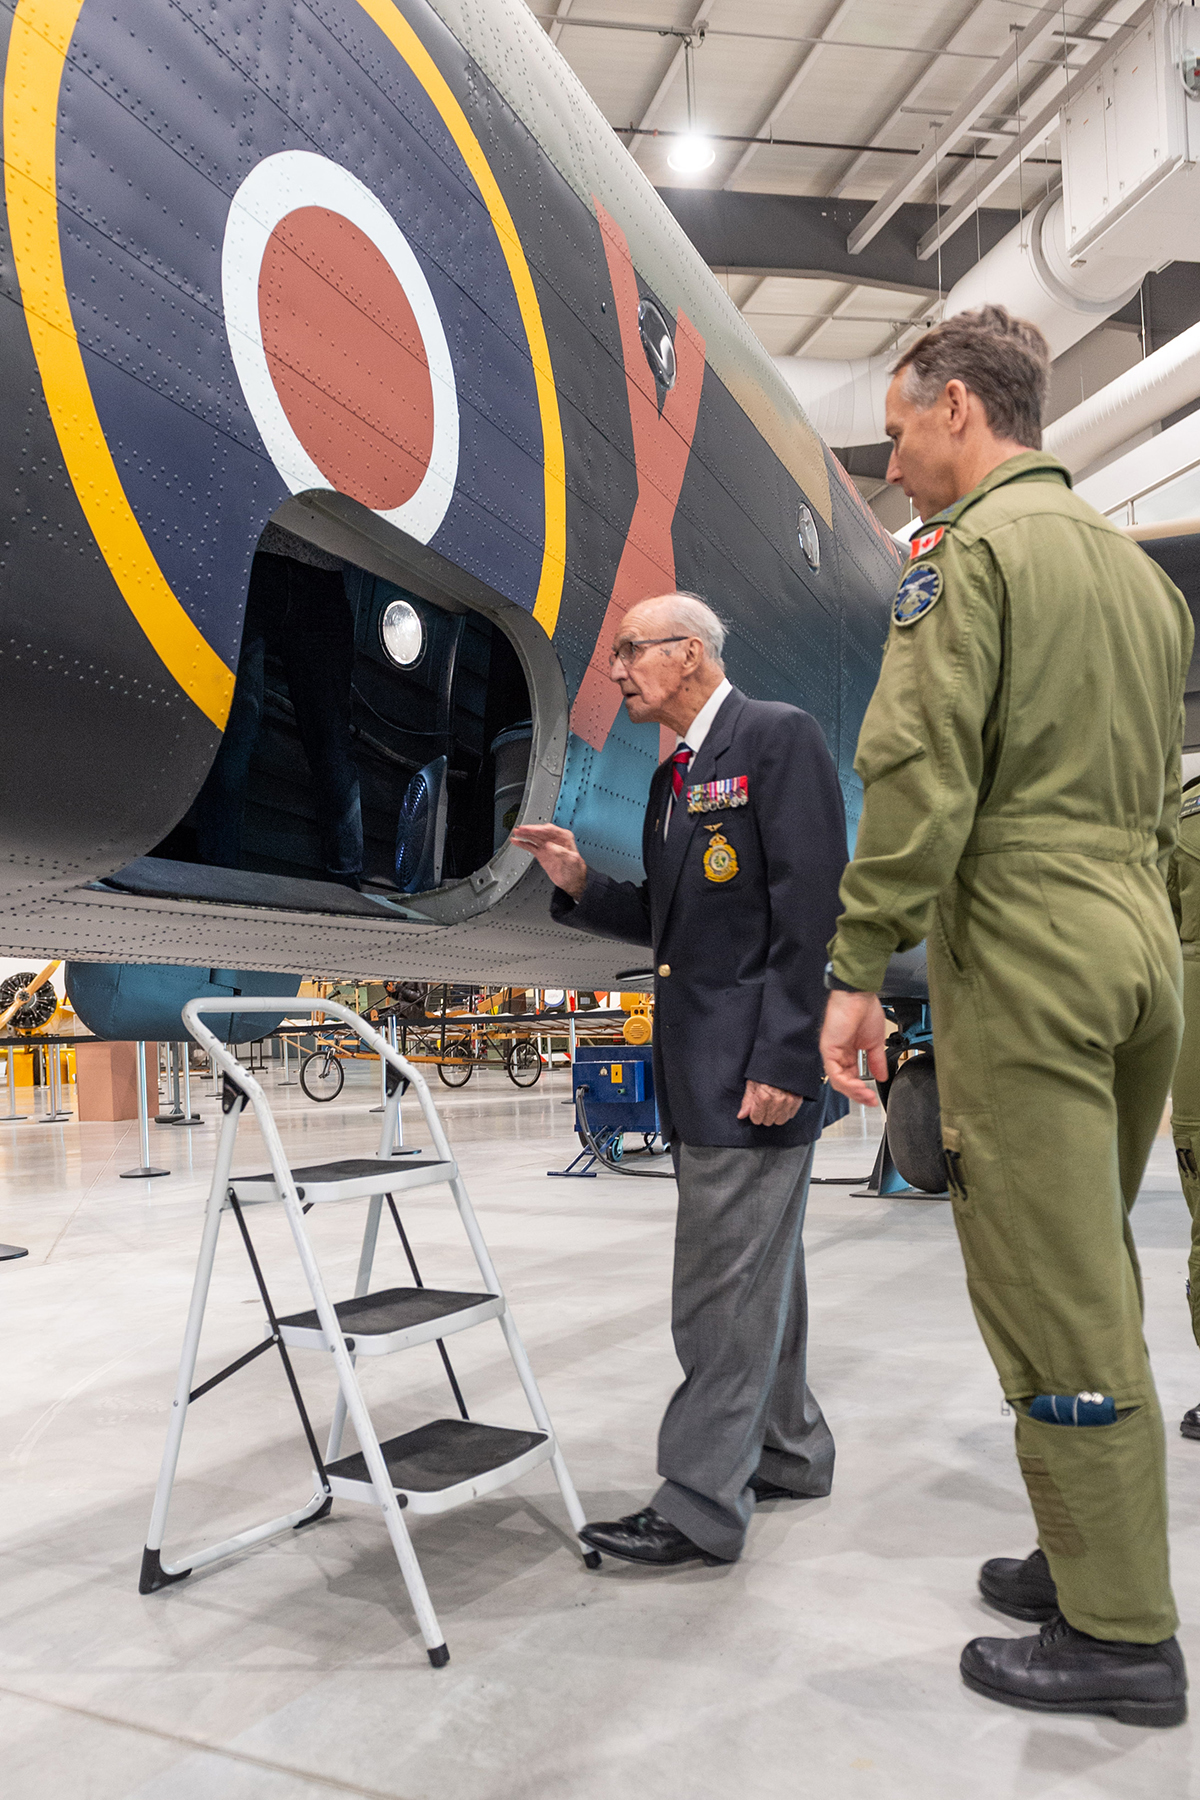 Flight Lieutenant (retired) Stuart Vallières and Lieutenant-General Al Meinzinger, commander of the Royal Canadian Air Force, look into the belly of the Handley Page Halifax bomber at the National Air Force Museum of Canada in Trenton, Ontario, on May 15, 2019. PHOTO: Ken Beliwicz, TN12-2019-0119-001-007